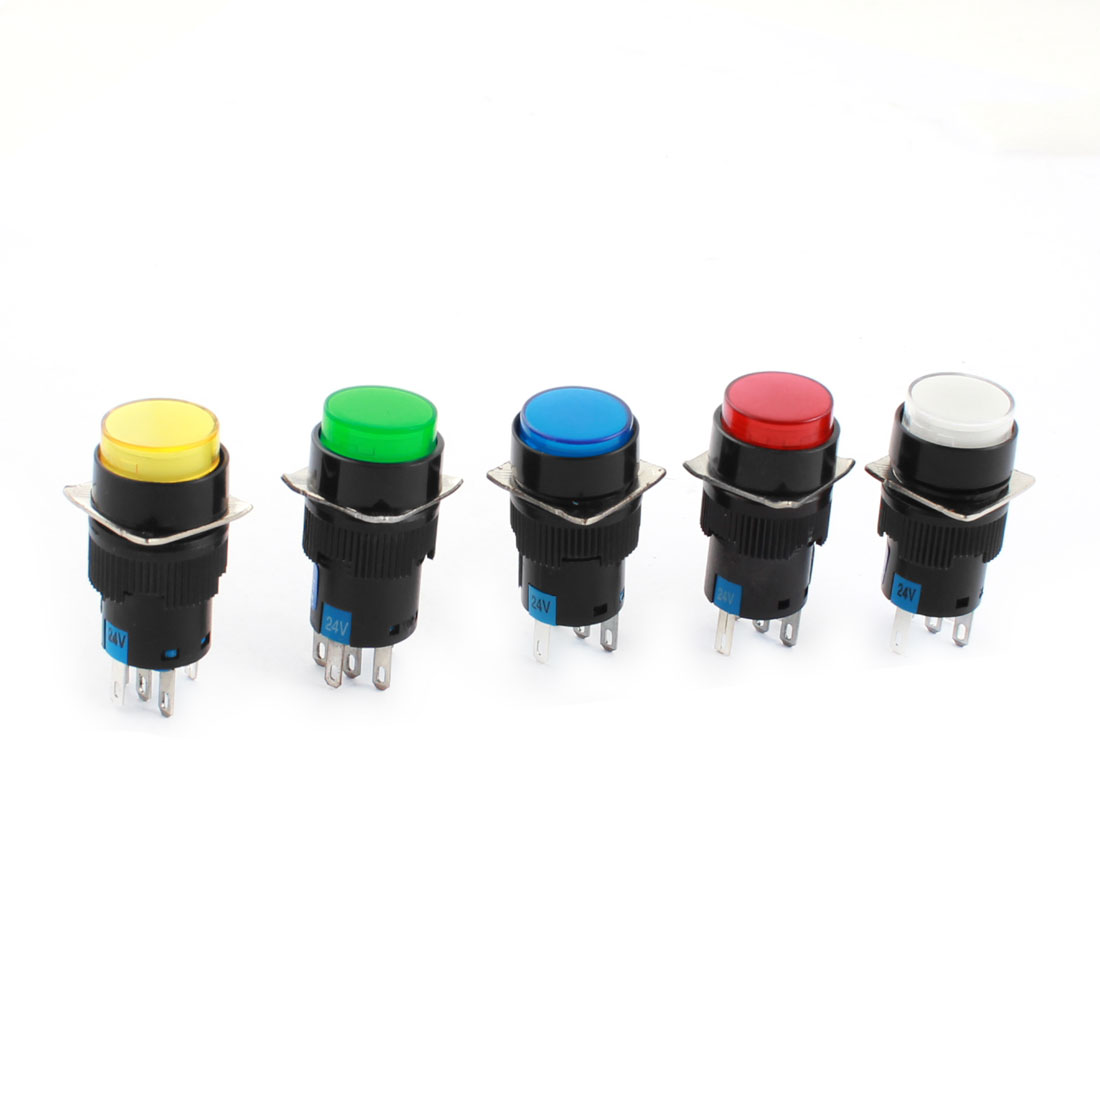 5pcs DC 24V Assorted Colored Indicator Light Panel Mount SPDT 1NO 1NC 5 Termianls Locking Type Round Head Pushbutton Switch 16mm Thread